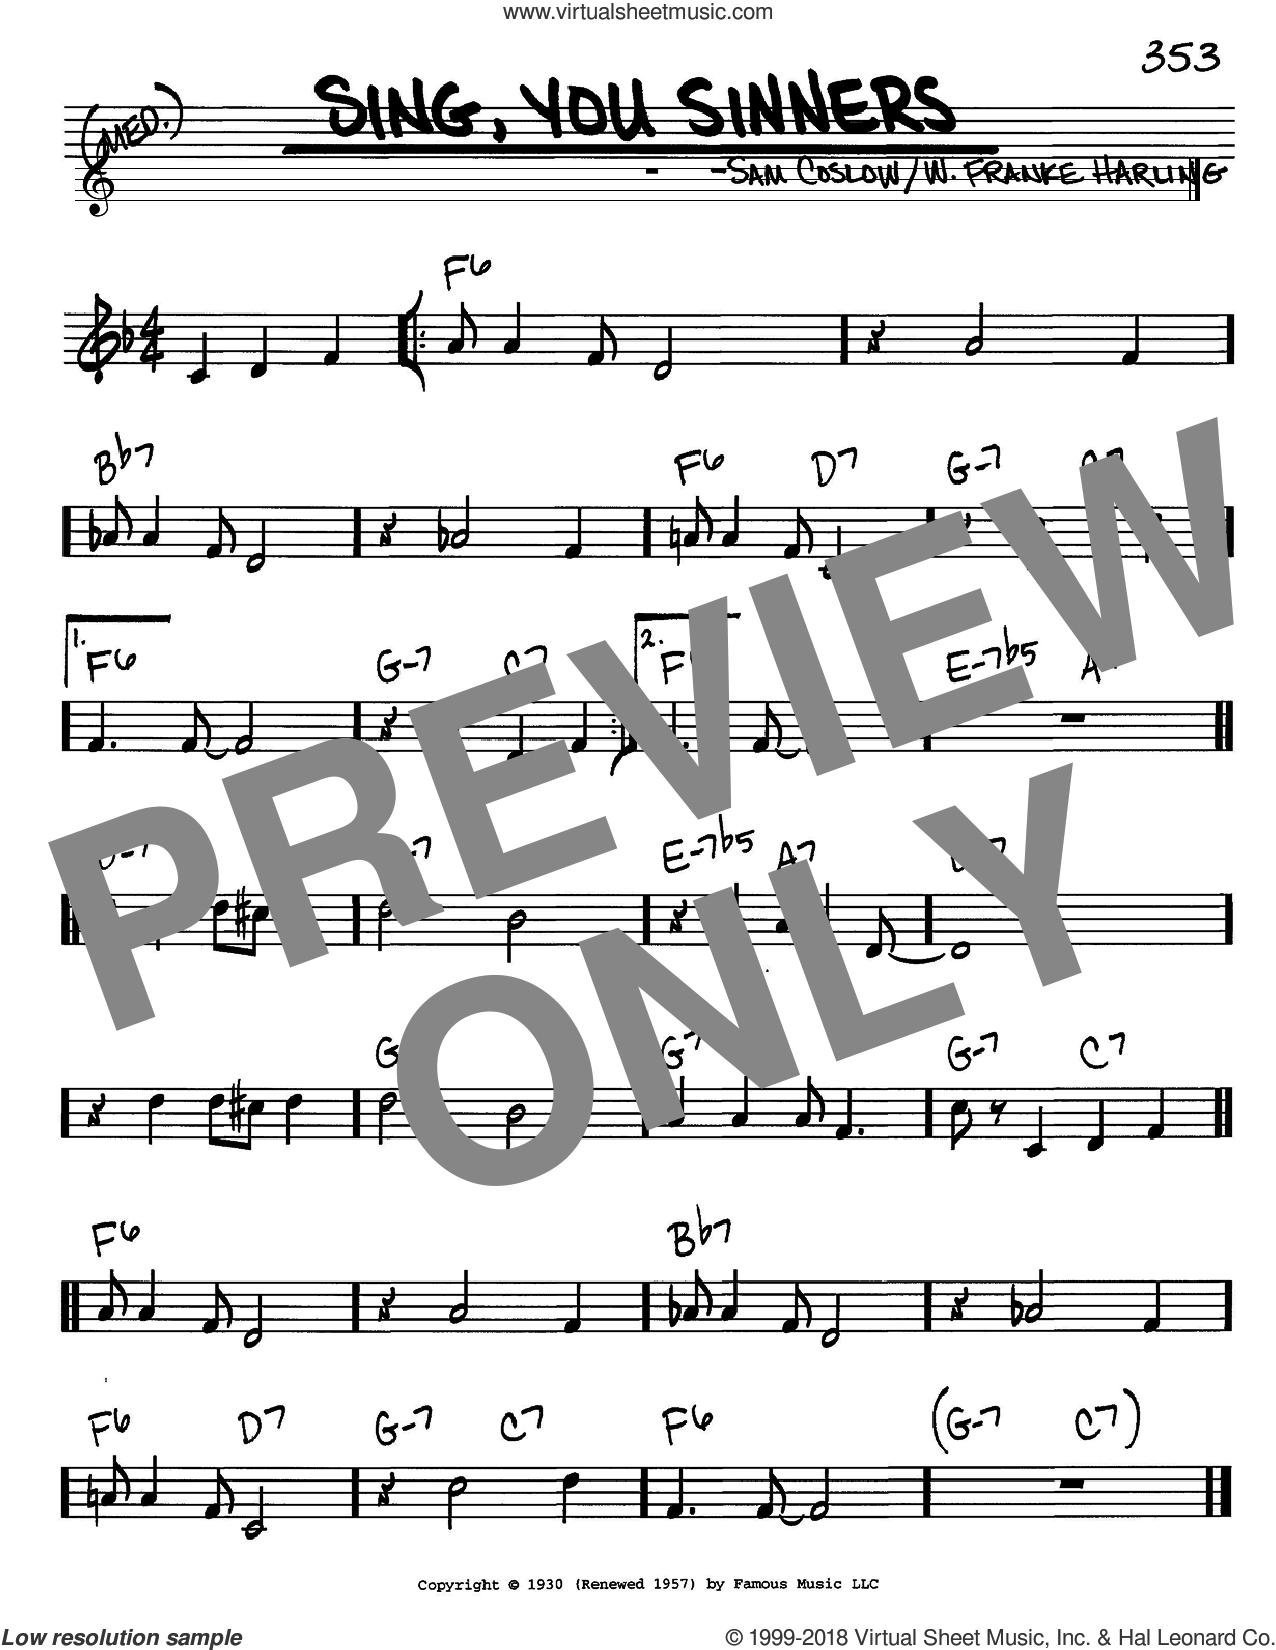 Sing, You Sinners sheet music for voice and other instruments (in C) by Sam Coslow and W. Franke Harling, intermediate skill level